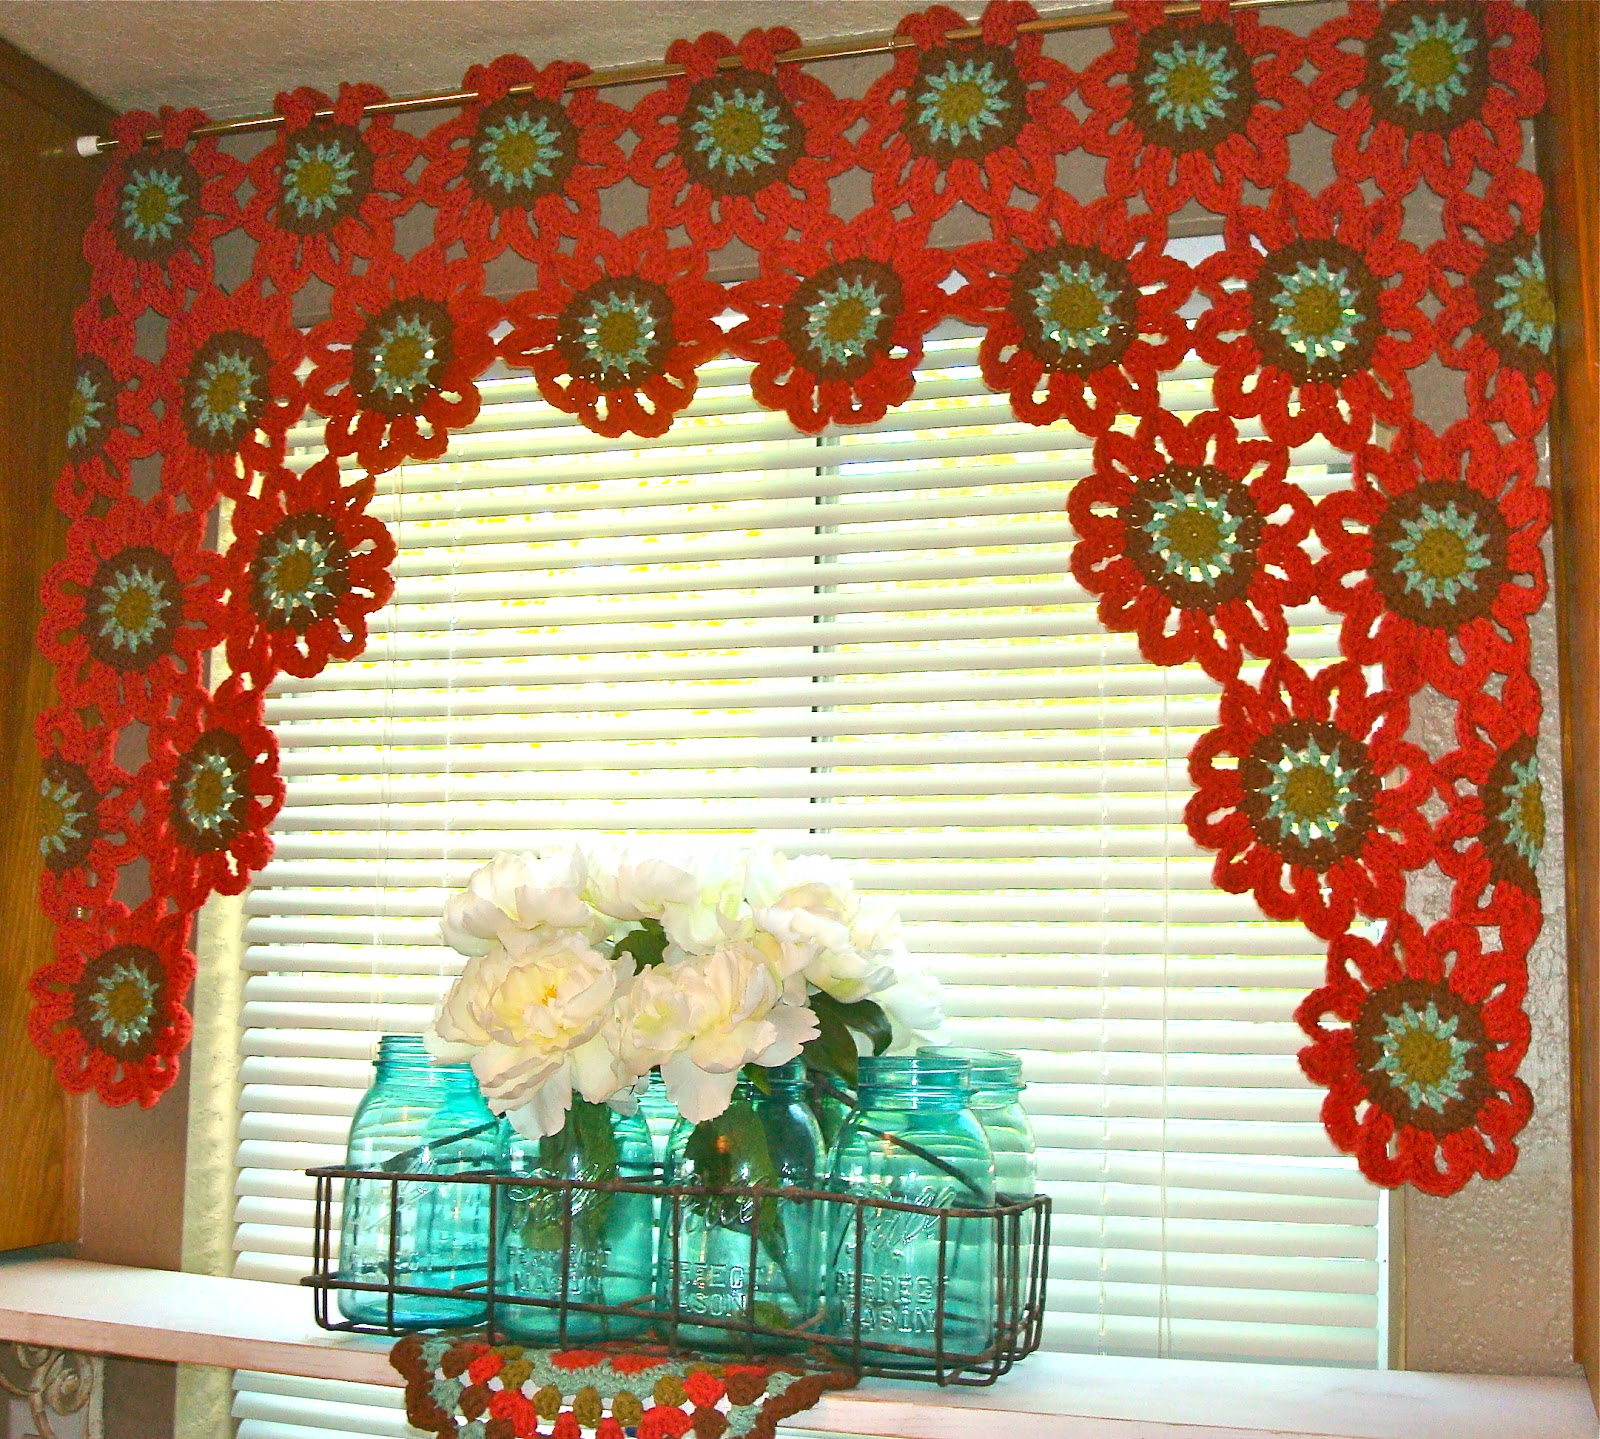 Make Your Bare Window Look Beautiful with Crochet Curtains